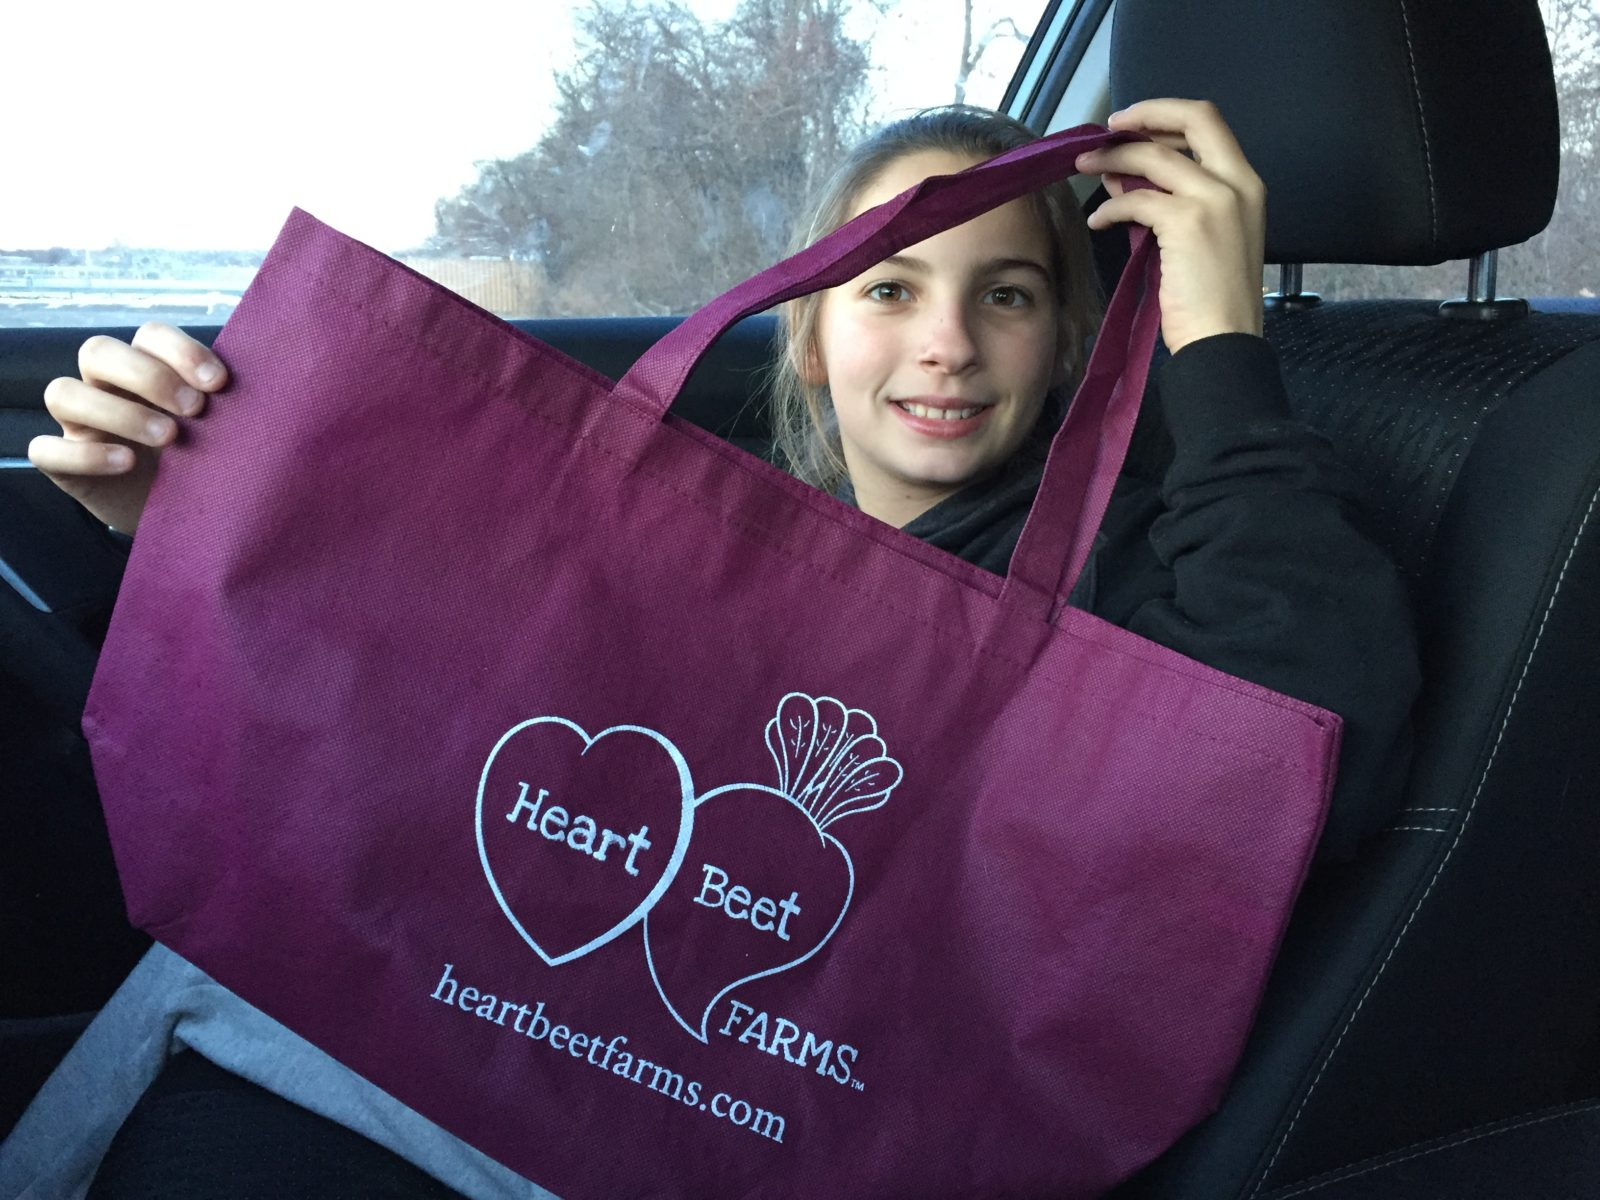 HeartBeet Farms Reusable Bags